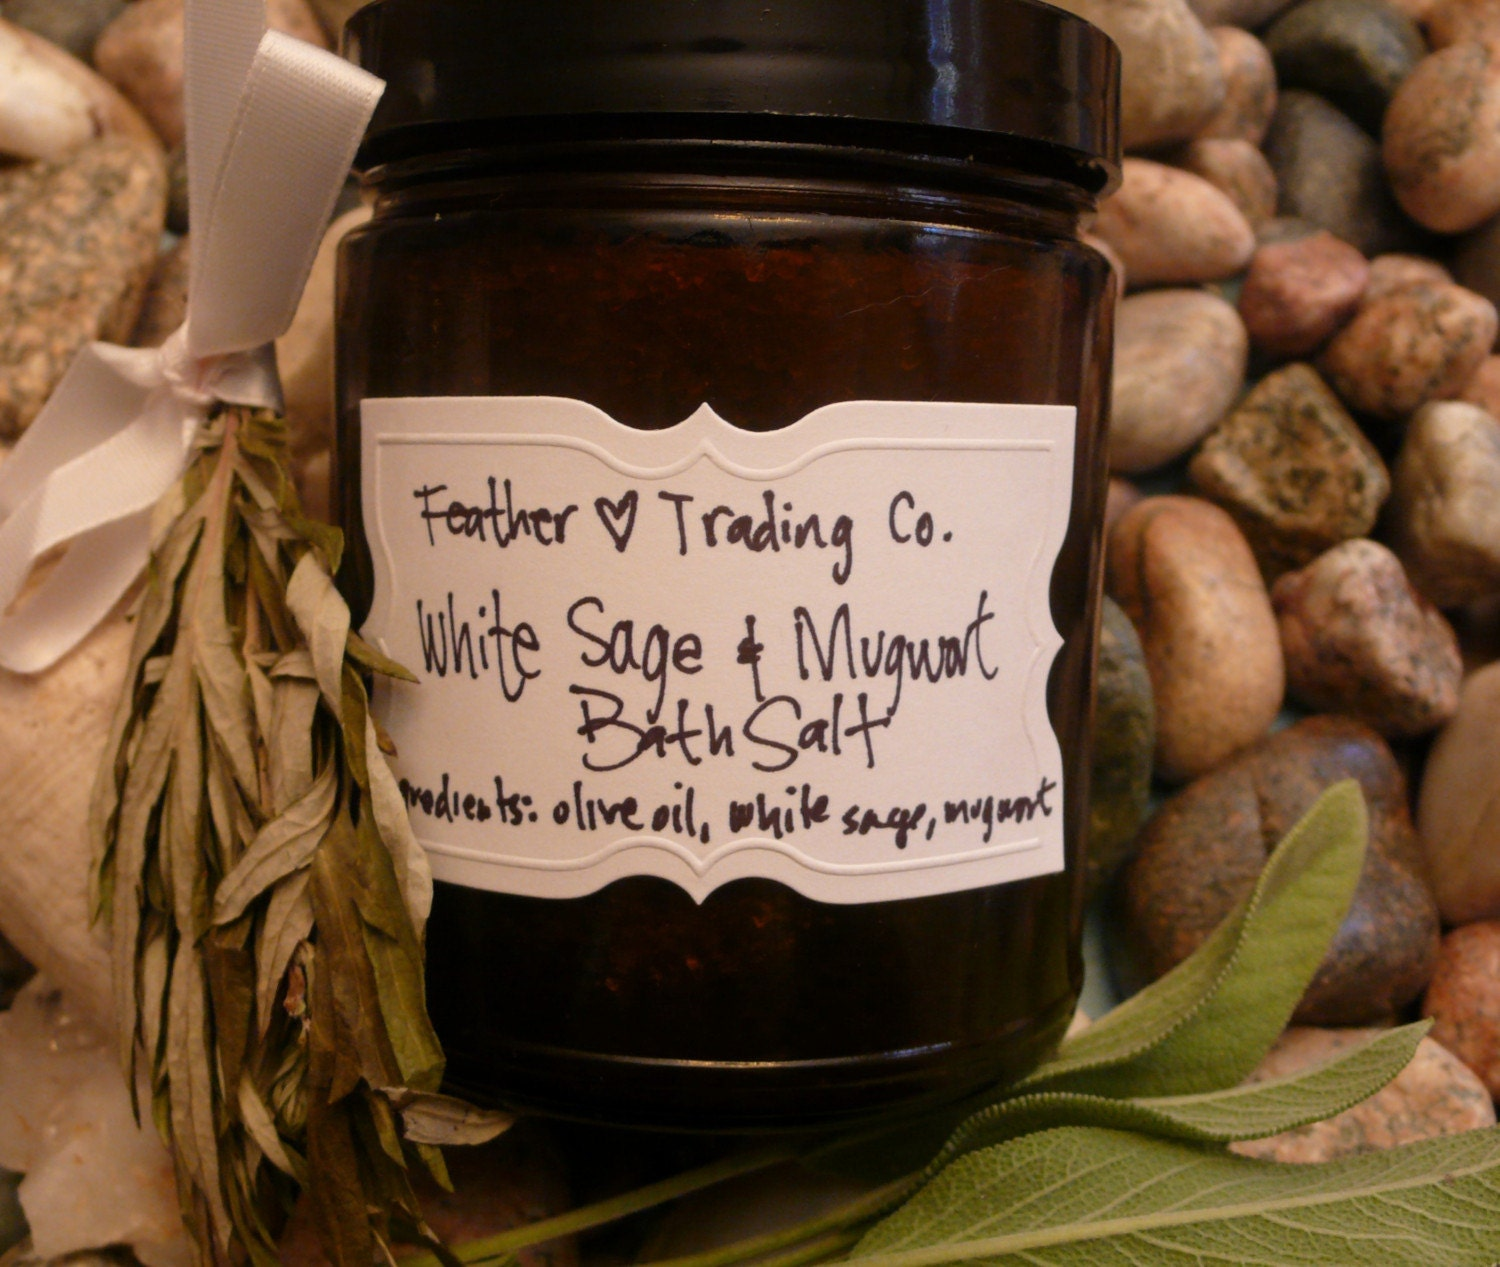 white sage and mugwort bath salt